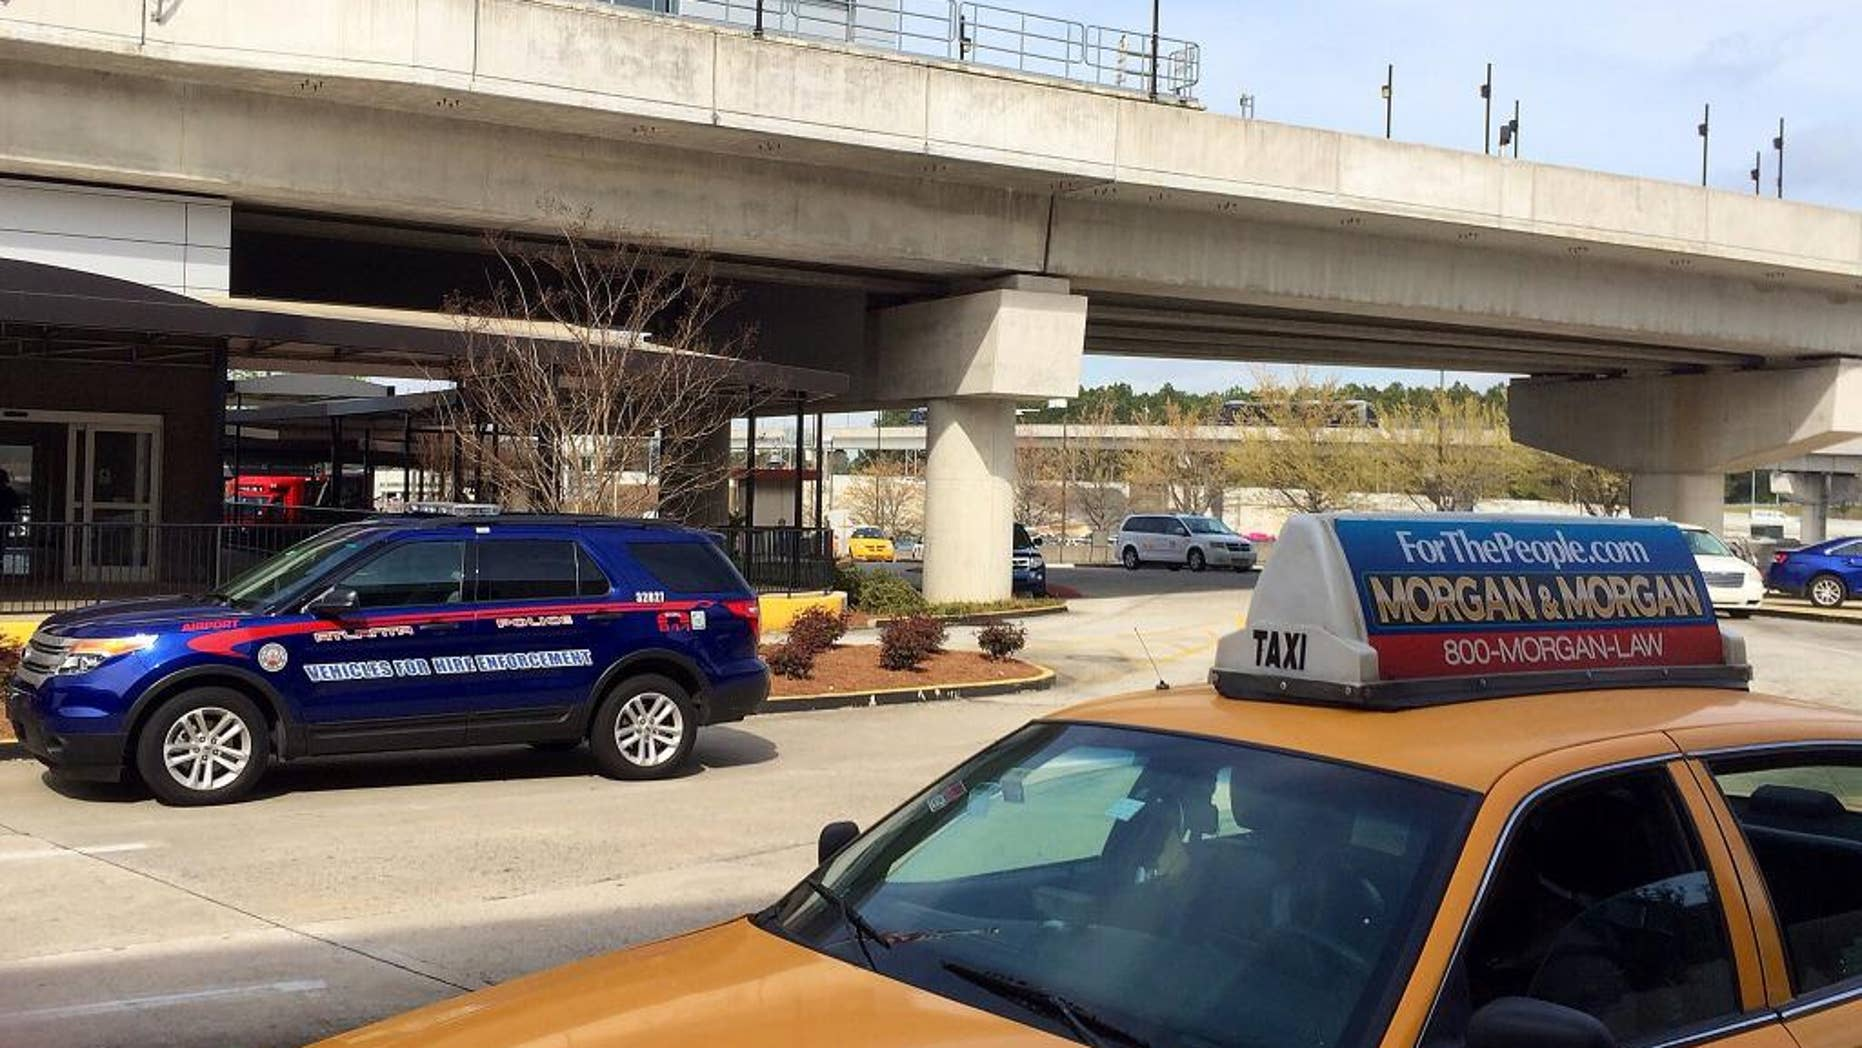 In this March 25, 2016 photo, an Atlanta Police Rides-For-Hire Enforcement vehicle sits amid taxi cabs outside the departures area of the domestic terminal at Hartsfield-Jackson Atlanta International Airport. A battle over background checks for Uber drivers at the world's busiest airport comes as cities like Los Angeles and Austin, Texas, consider more thorough screenings to prevent criminals from getting behind the wheel. Uber has objected to the use of fingerprints to check criminal records of its drivers, saying its own record checks are sufficient. (AP Photo/Jeff Martin)